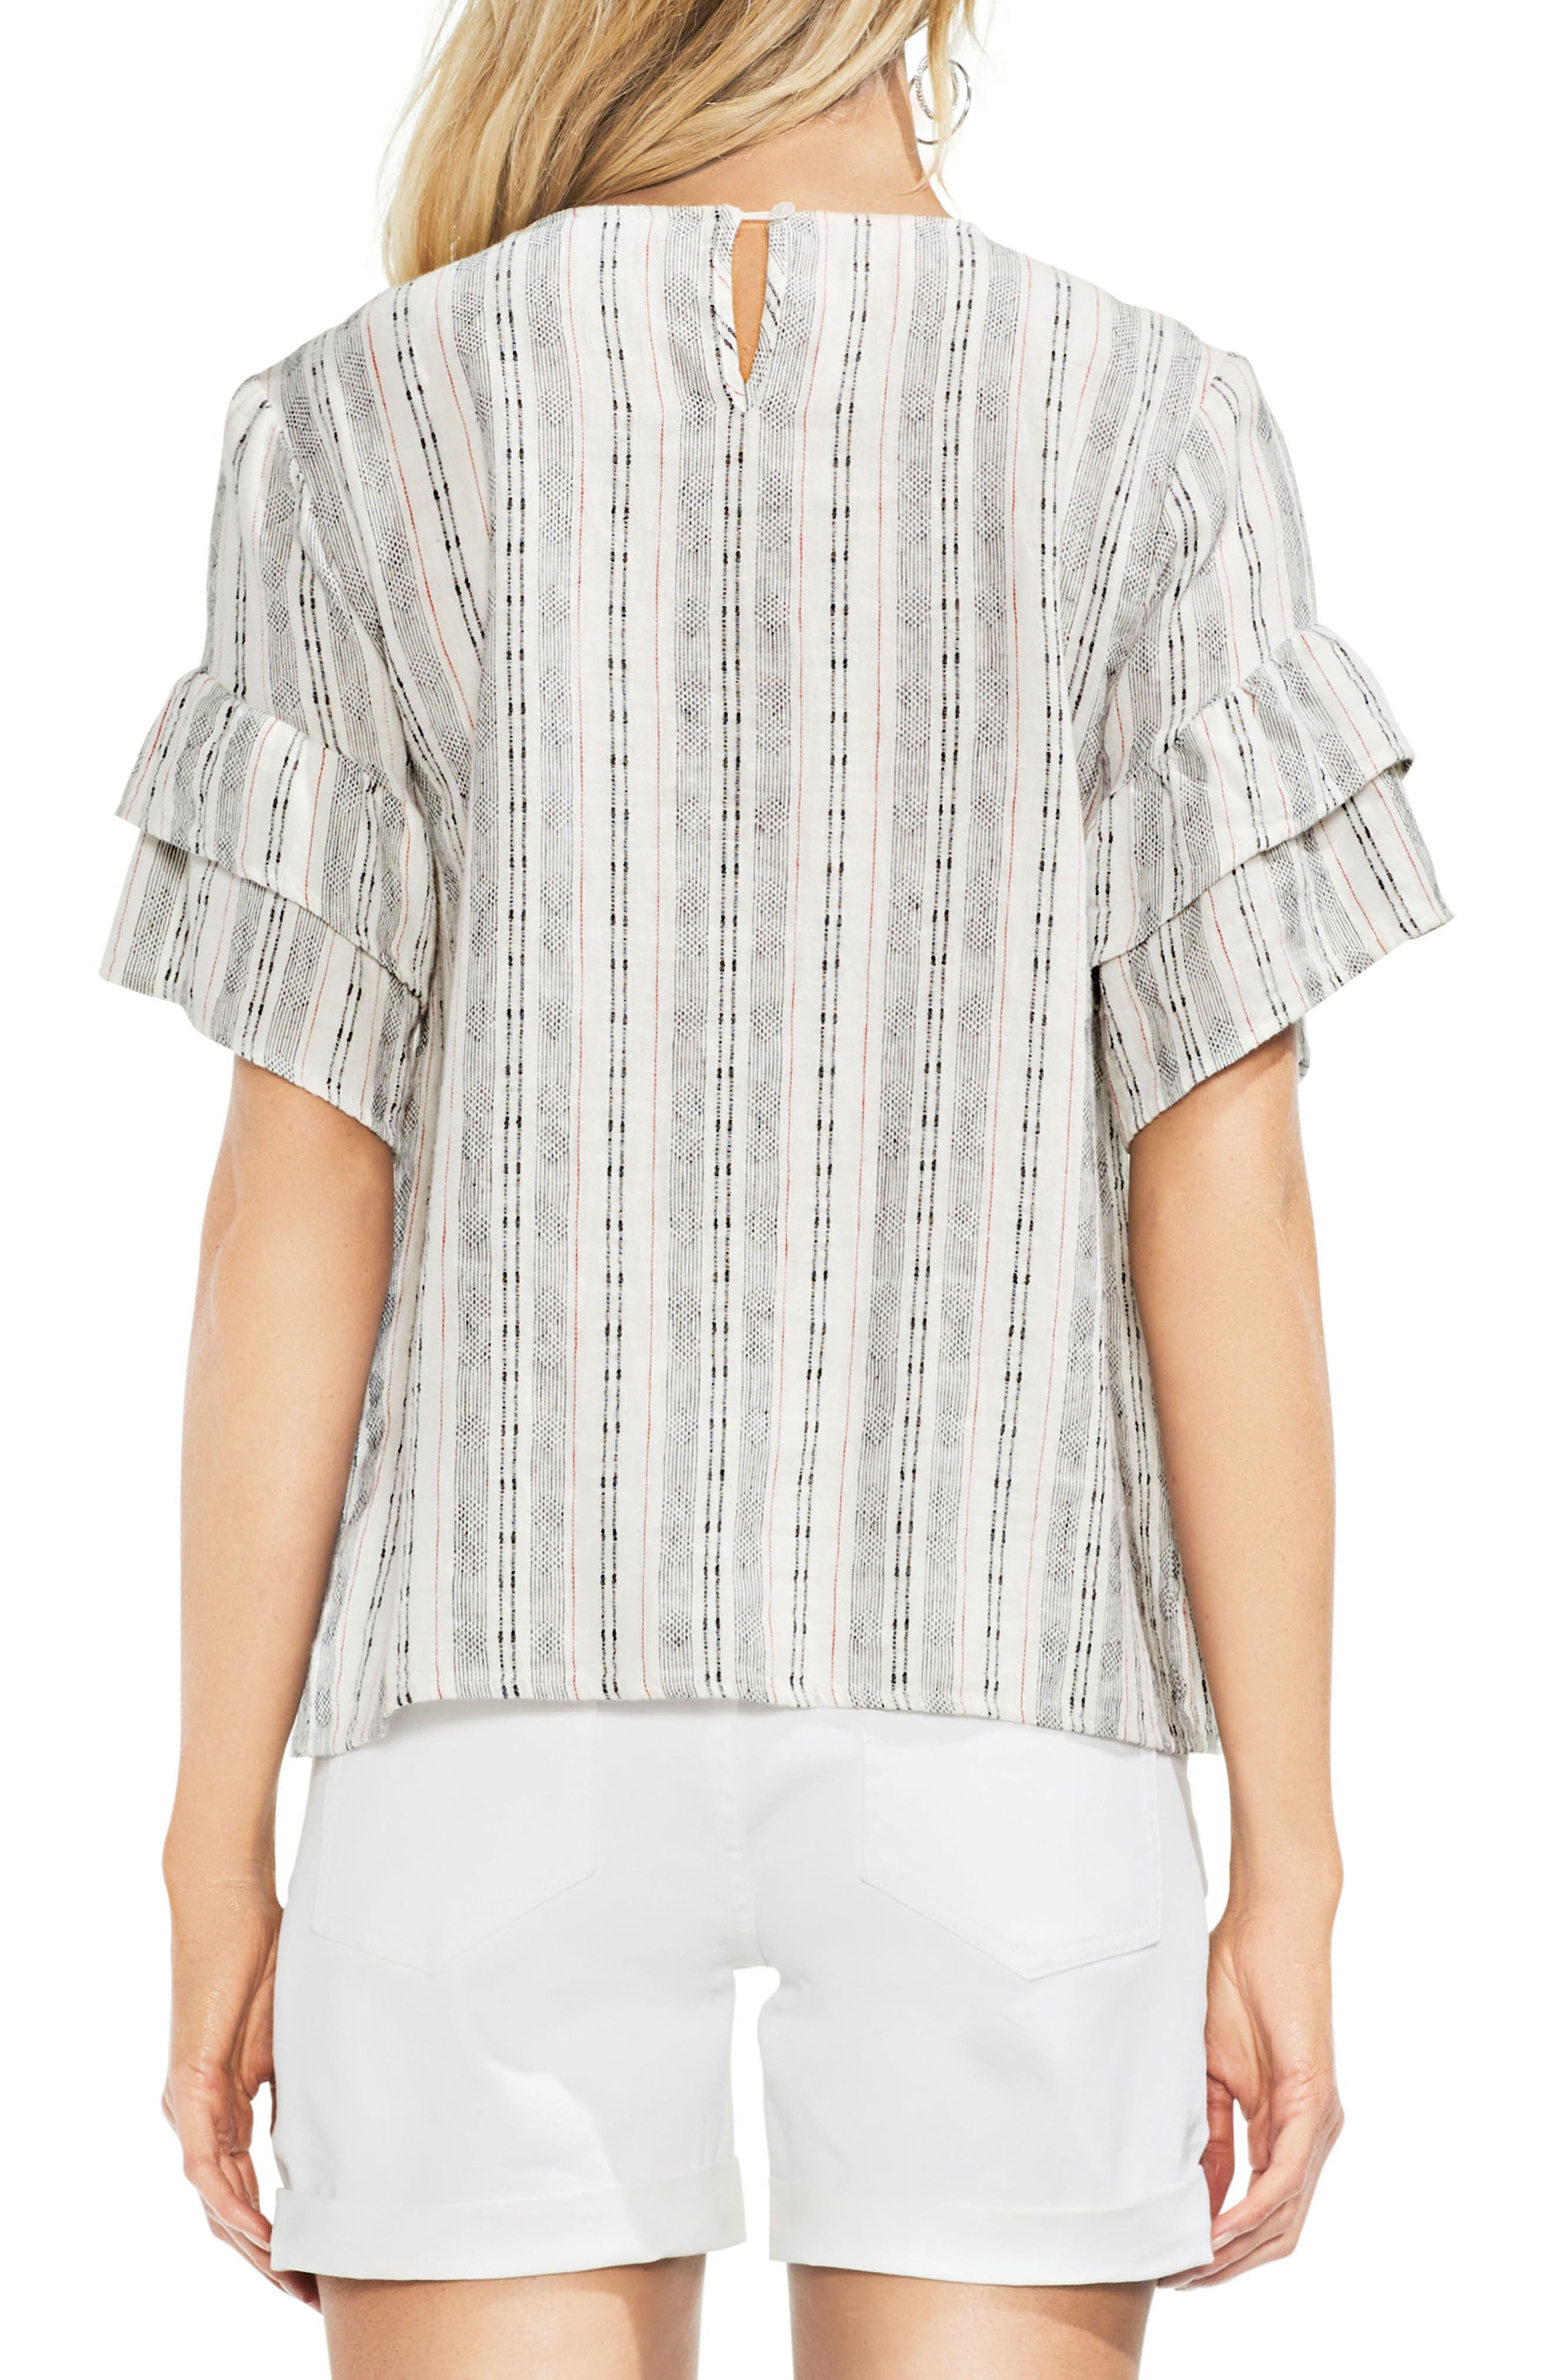 Short Sleeve Embroidered Peasant Top,                             Alternate thumbnail 2, color,                             600